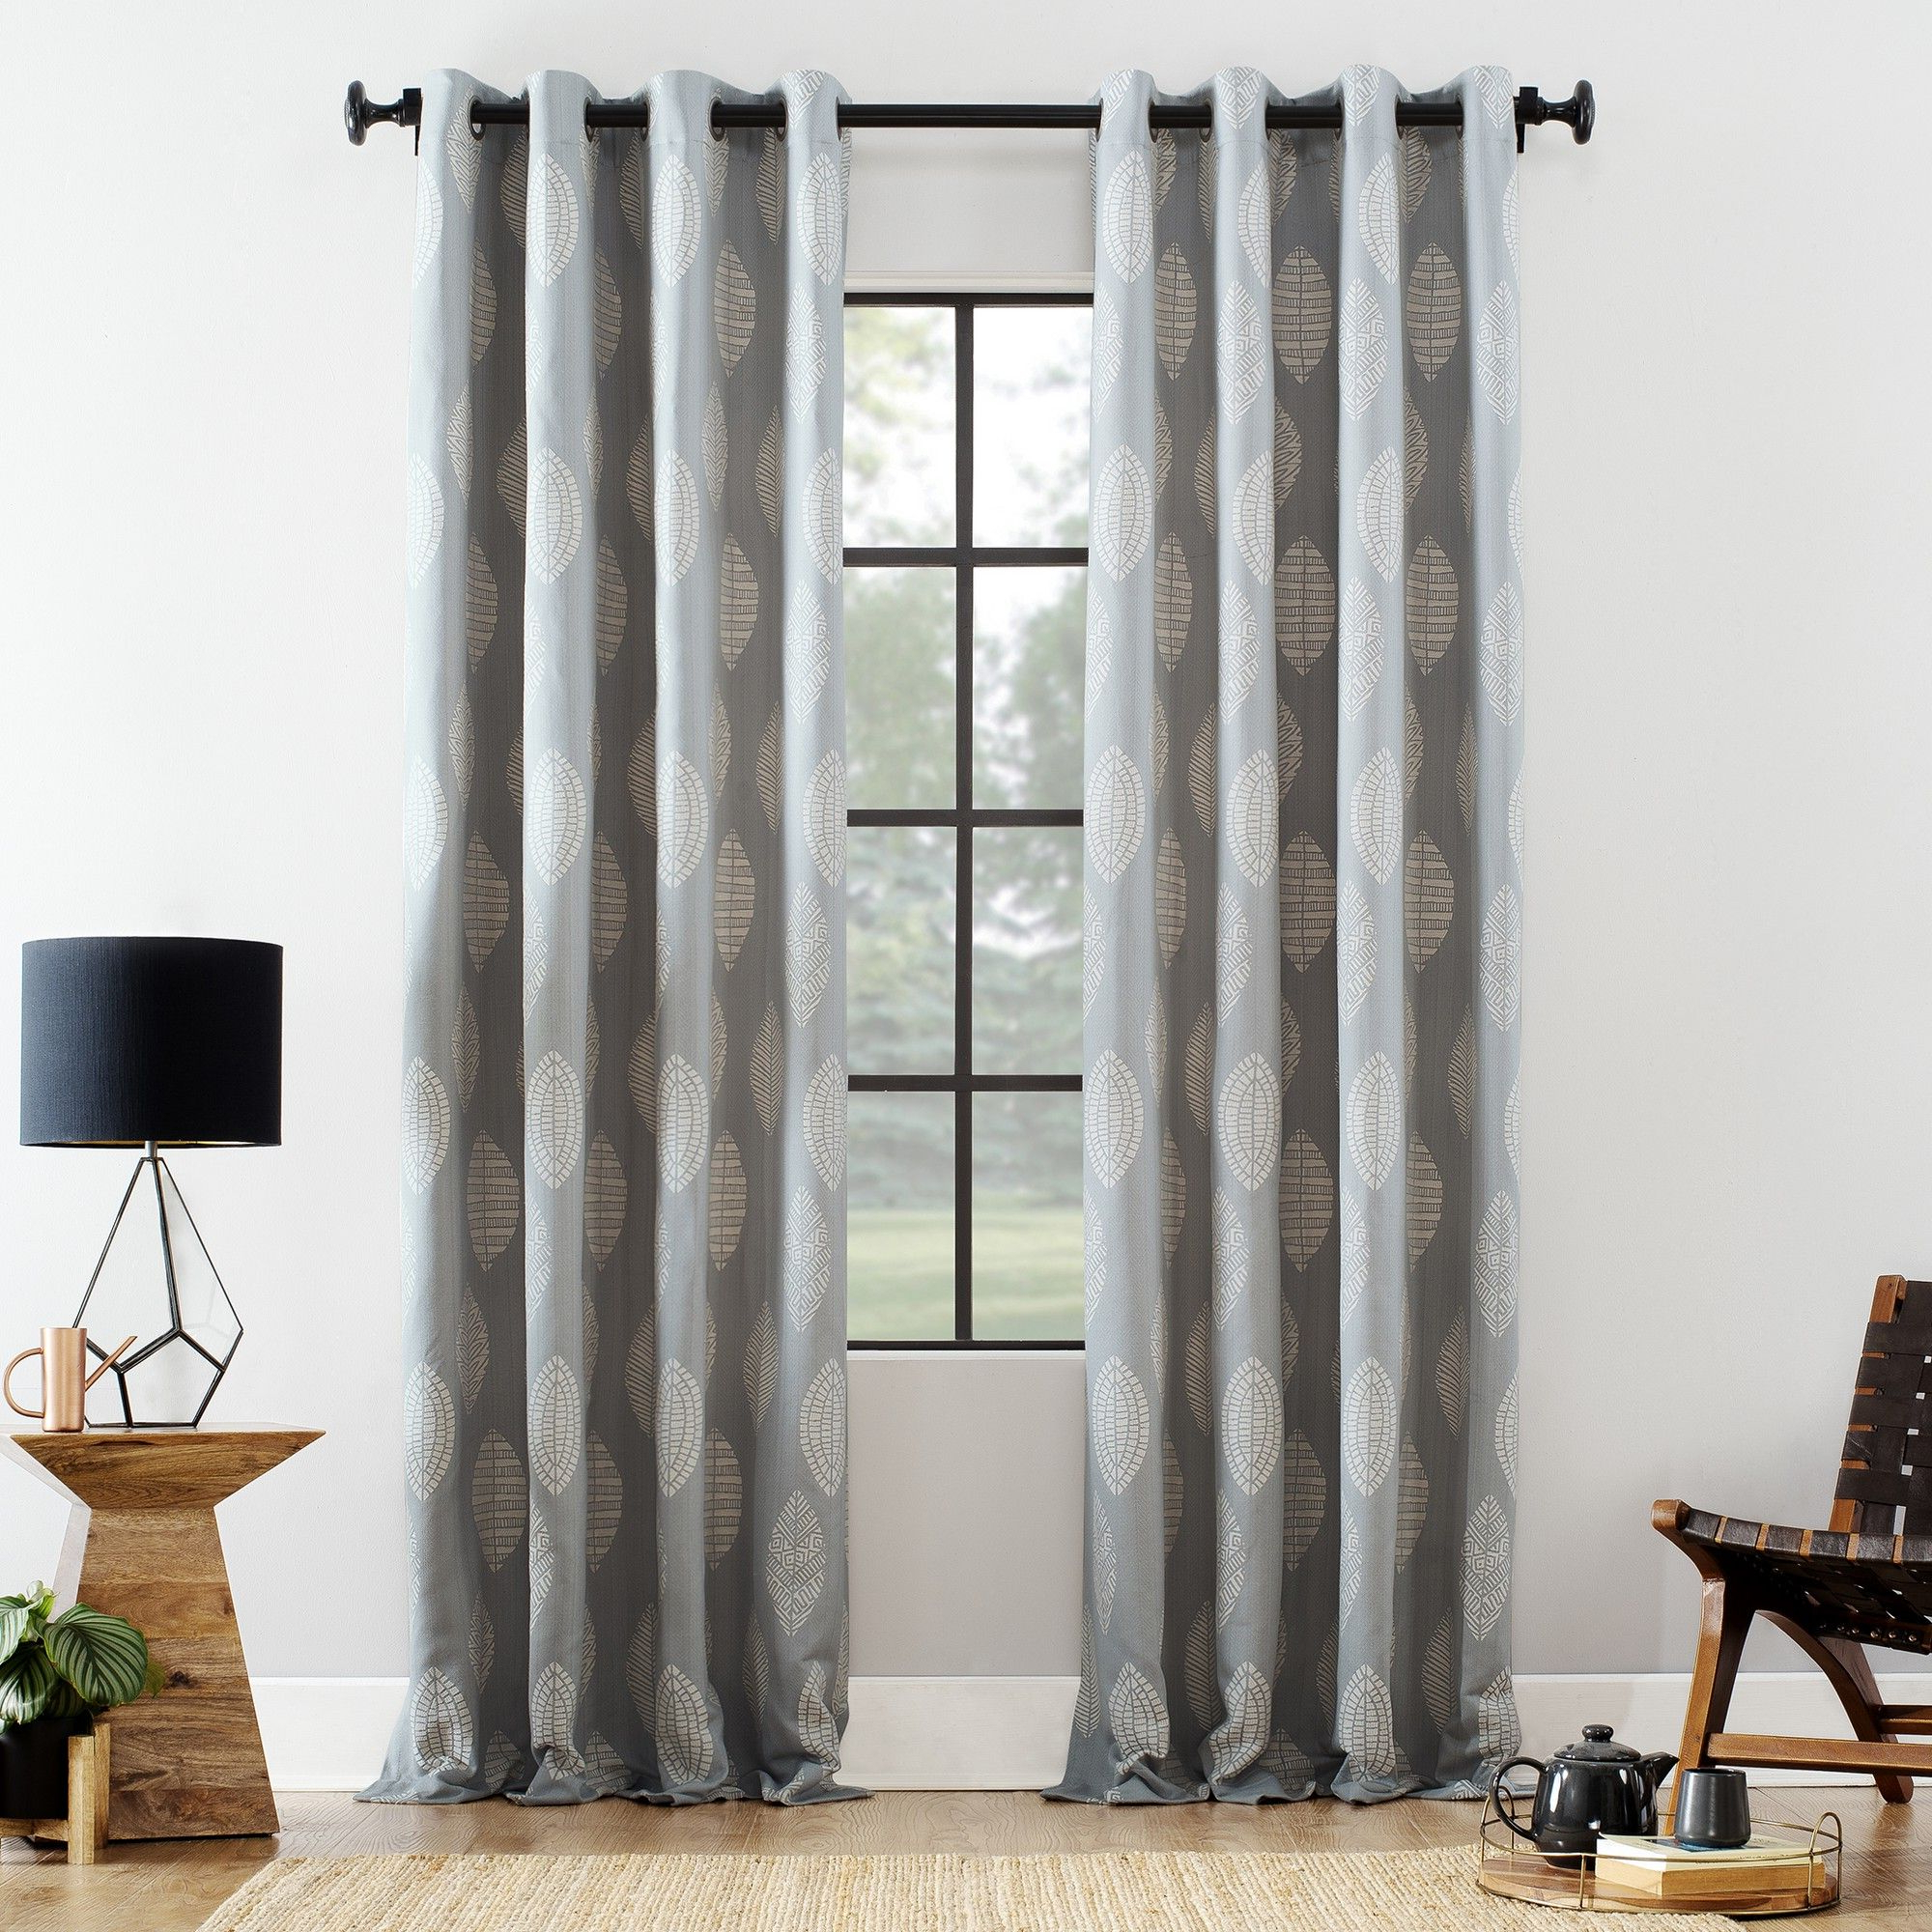 """The Curated Nomad Duane Jacquard Grommet Top Curtain Panel Pairs Regarding Latest 52""""x84"""" Herringbone Leaf Cotton Blend Grommet Top Curtain (View 15 of 21)"""